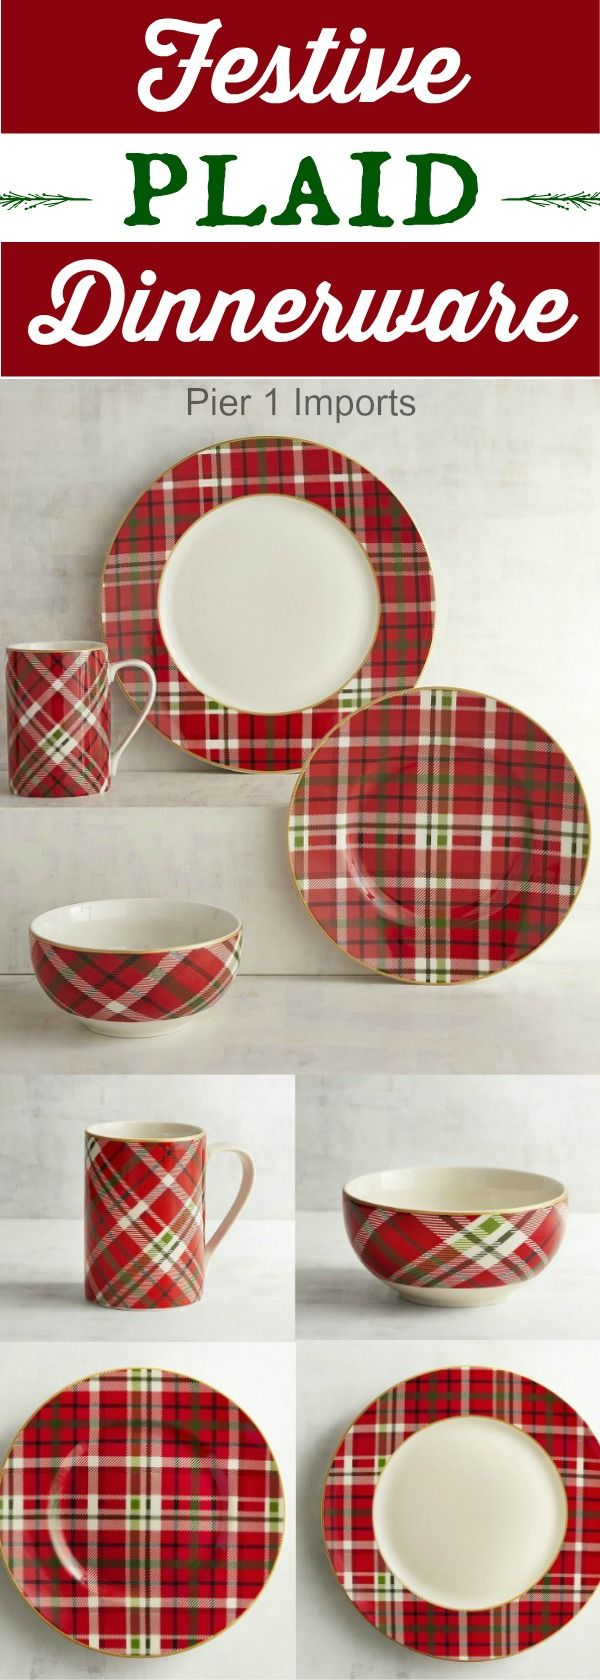 Order your holiday plates in time for Christmas! This porcelain, plaid dinnerware from Pier 1 is perfect for a rustic Christmas theme. Microwave and dishwasher safe. #christmas #dinnerware #plaid #oybpinners #ad